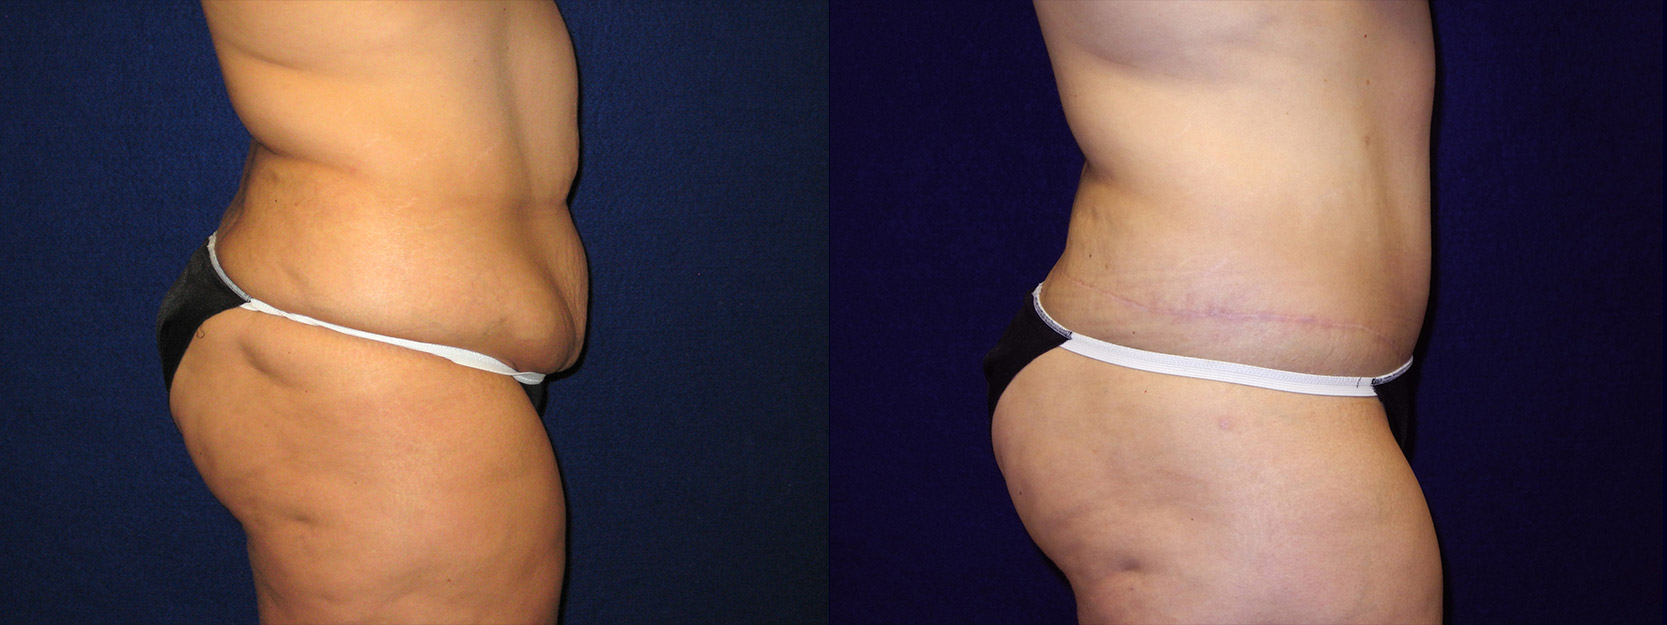 Right Profile View - Abdominoplasty After Massive Weight Loss